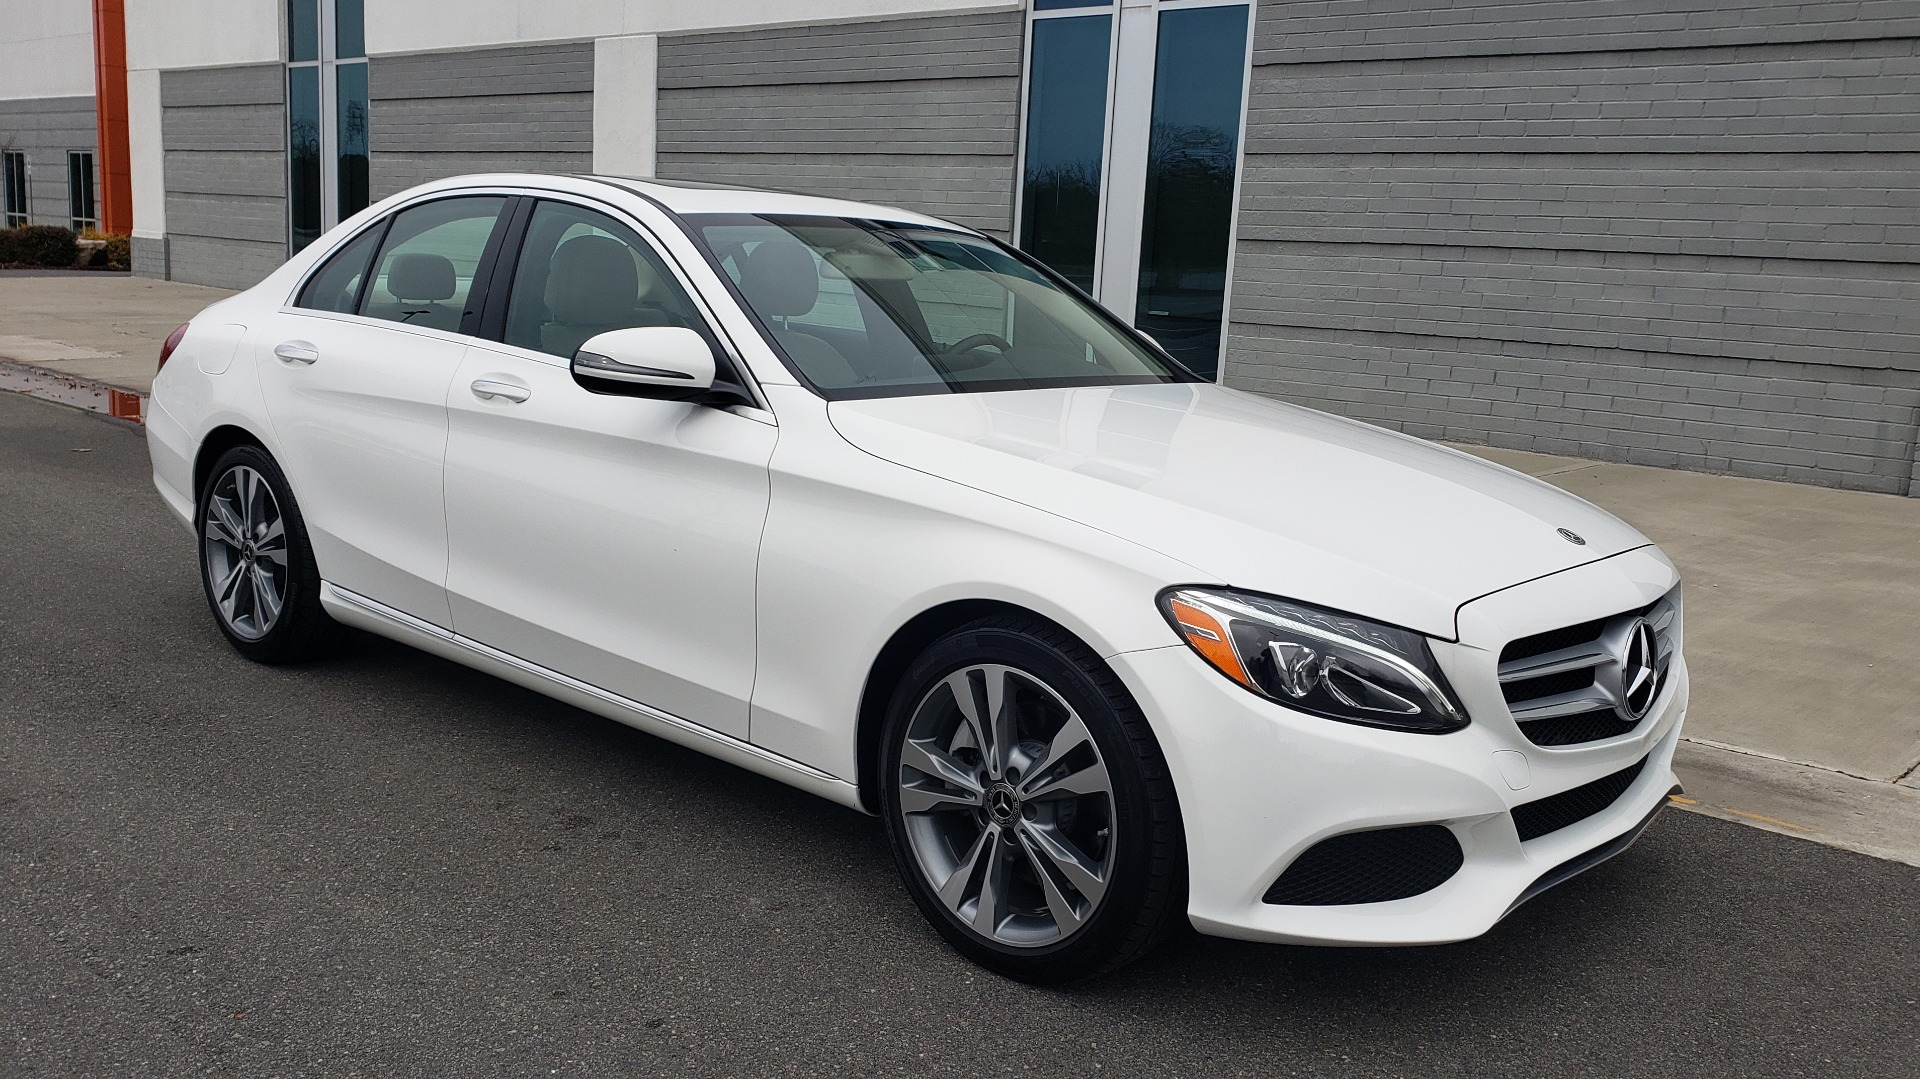 Used 2018 Mercedes-Benz C-CLASS C 300 PREMIUM / NAV / HTD STS / APPLY CARPLAY / REARVIEW for sale $26,695 at Formula Imports in Charlotte NC 28227 4